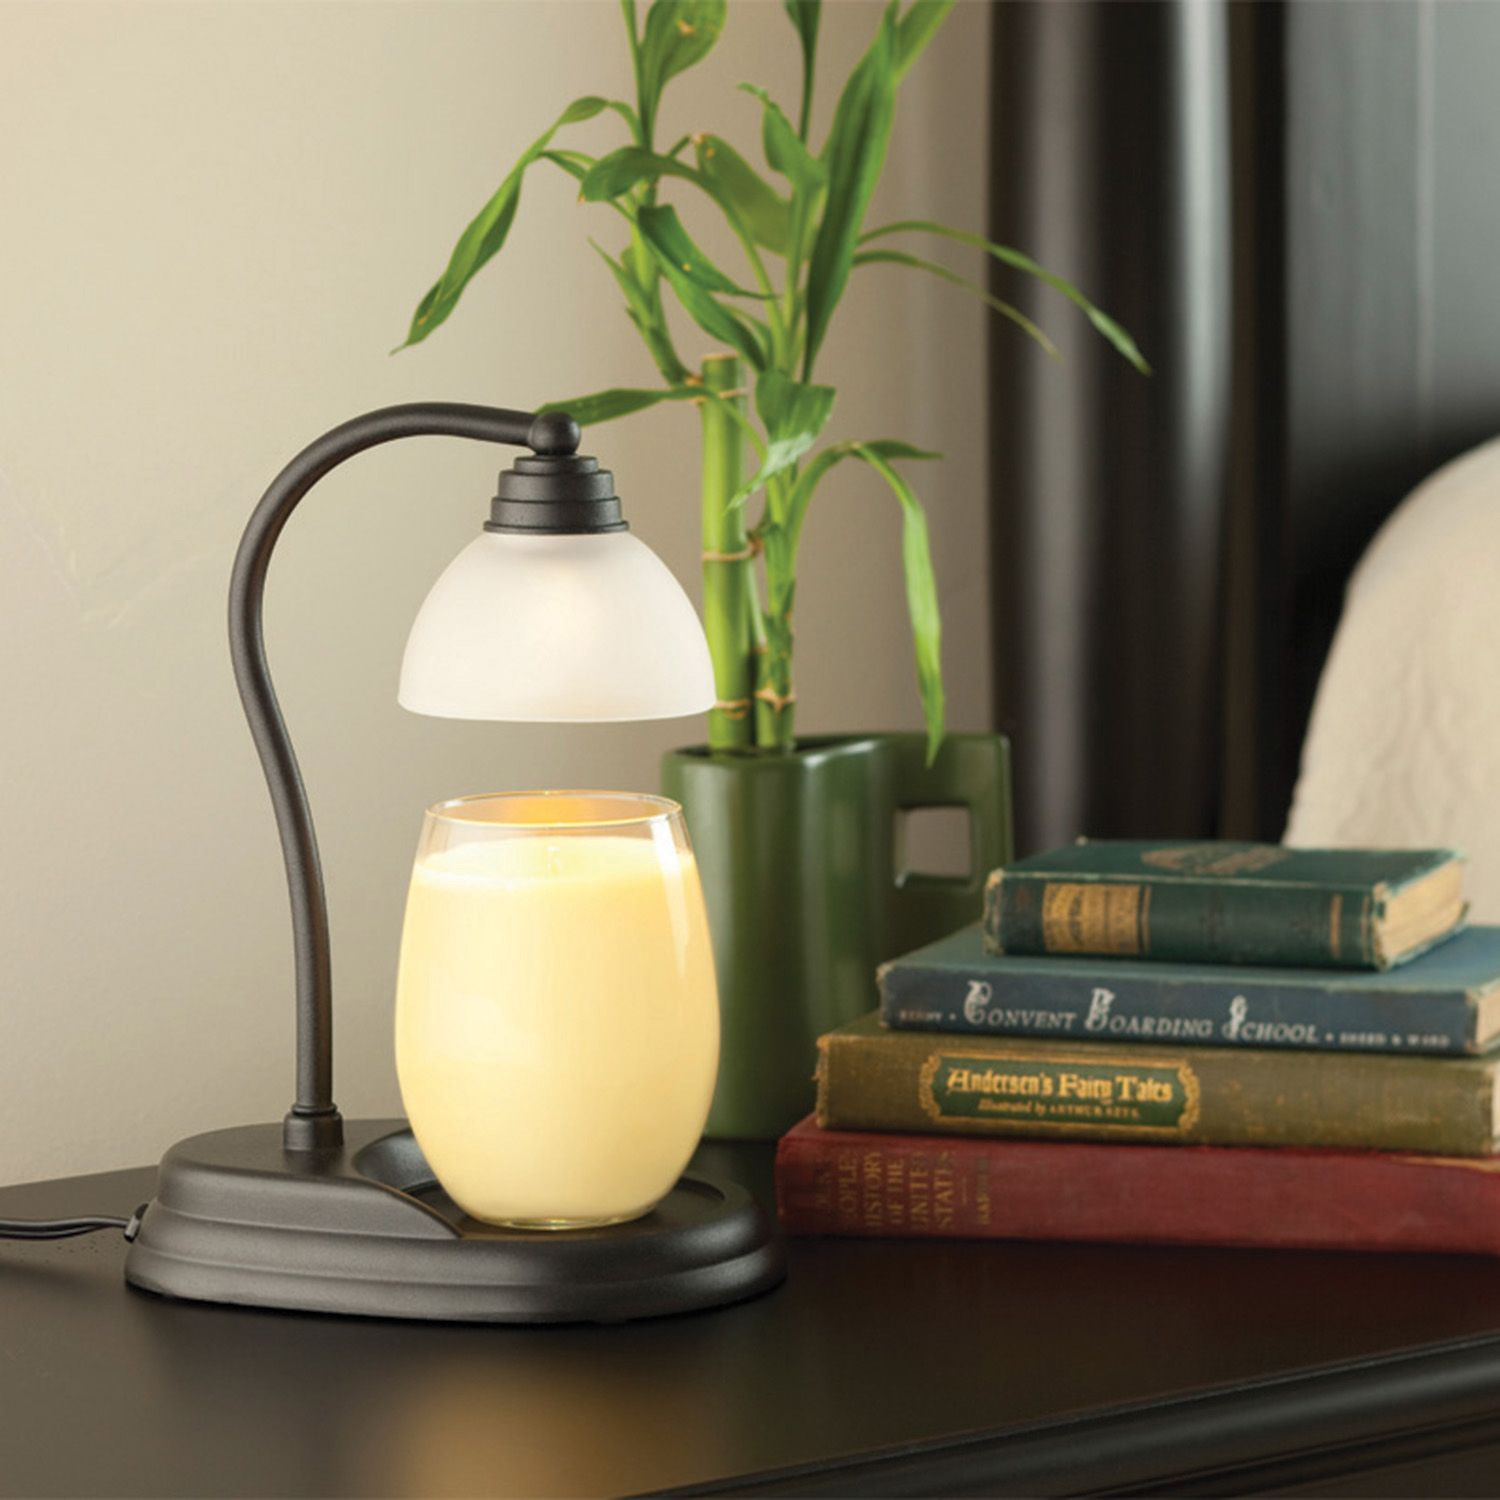 Aurora Candle Warmer Lamp Creates The Ambiance Of A Burning Candle Without A Flame Candle Warmer Lamp Candle Warmer Aurora Lamp